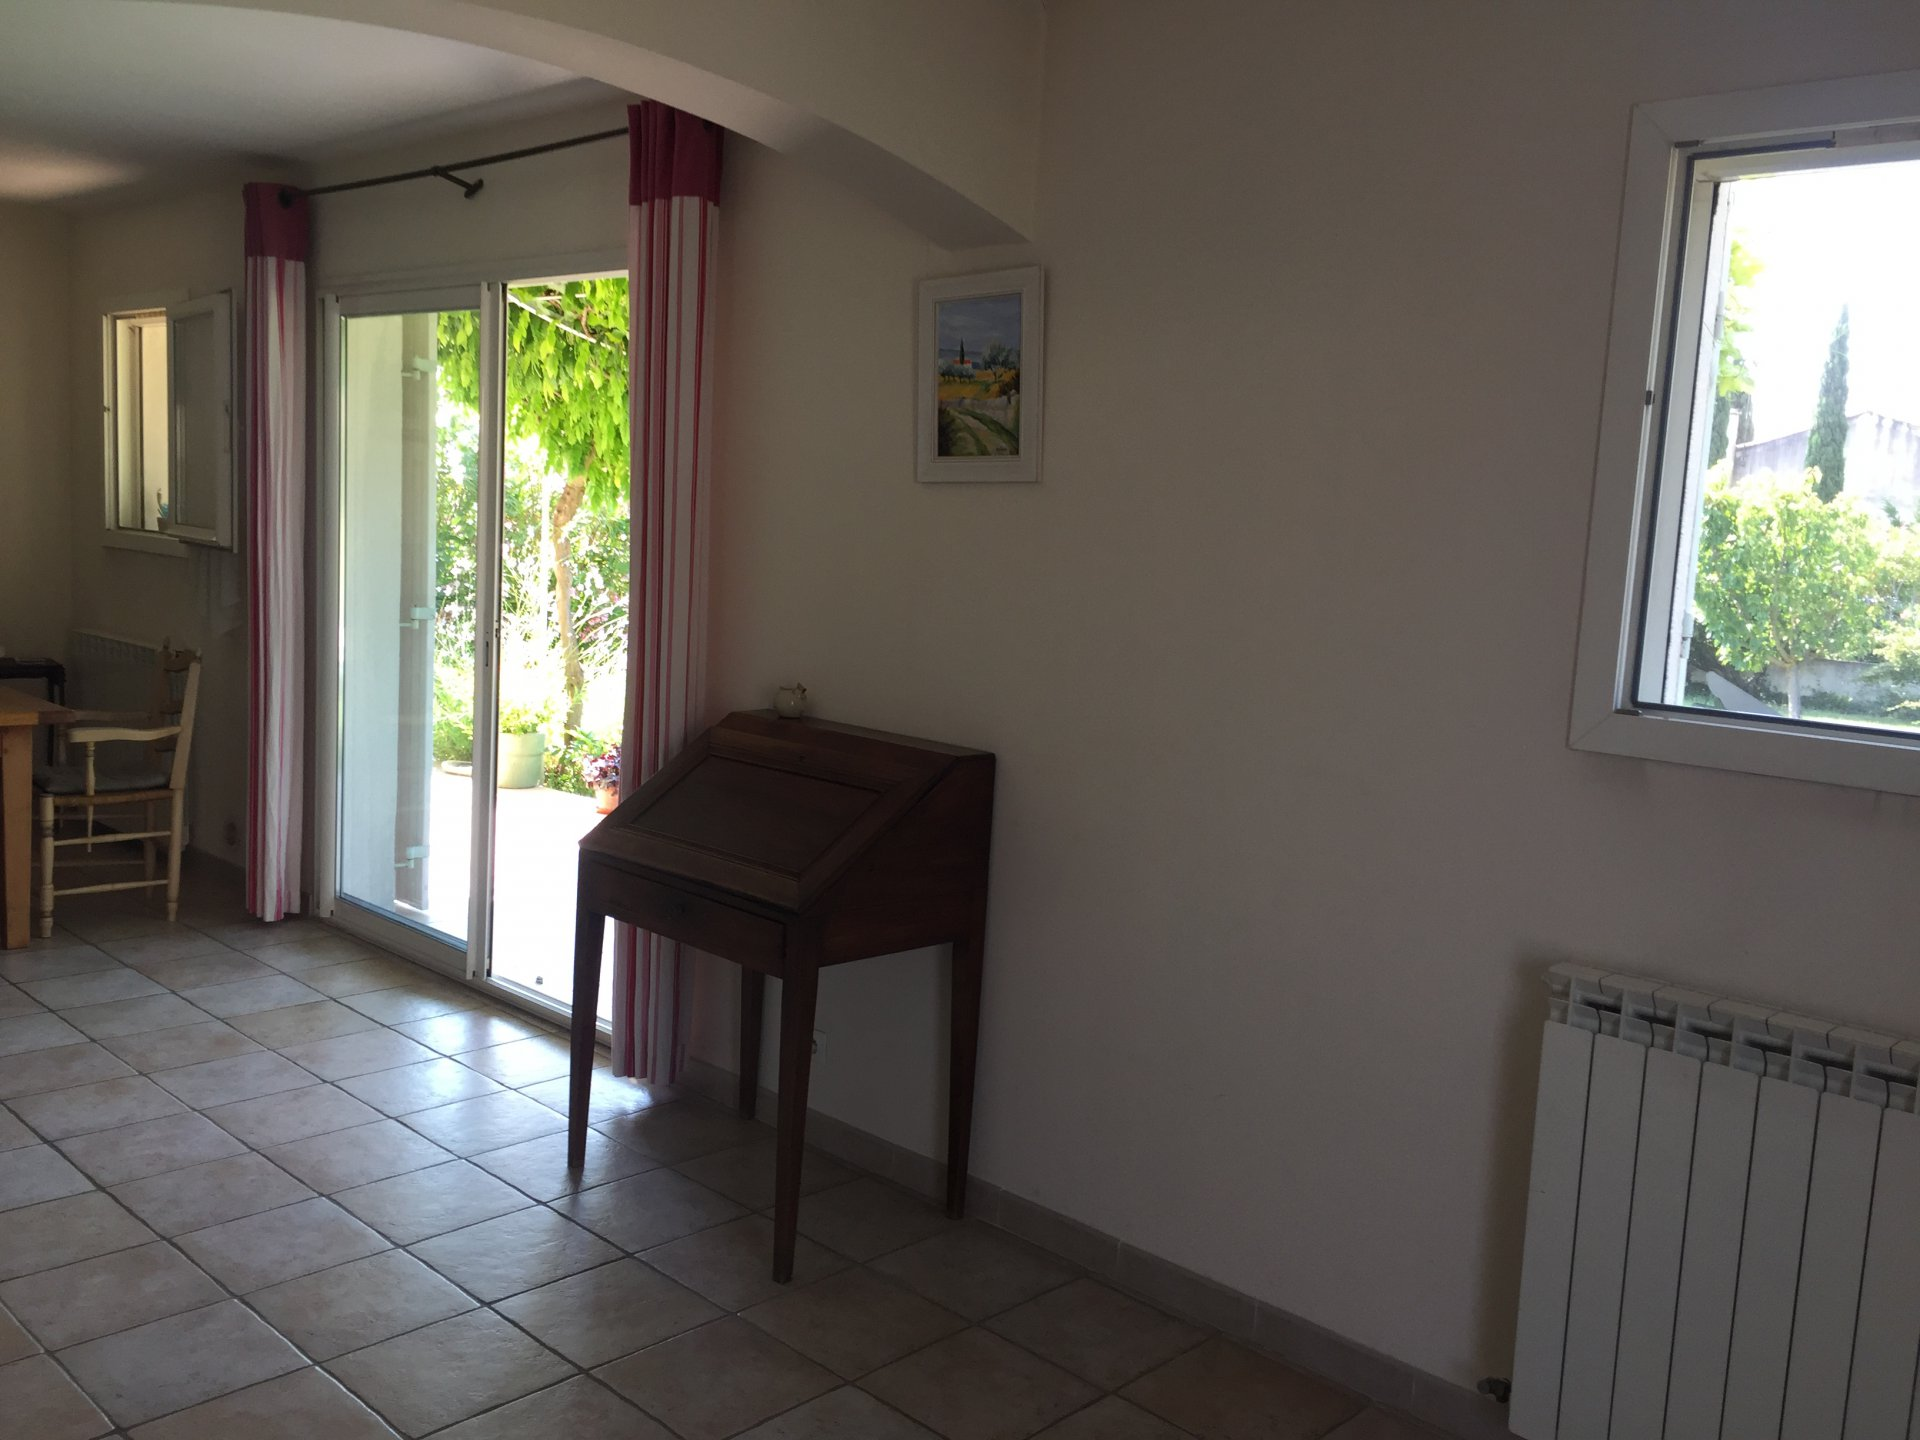 MOLLEGES: House with stunning views of the Alpilles, in a quiet environment, close co